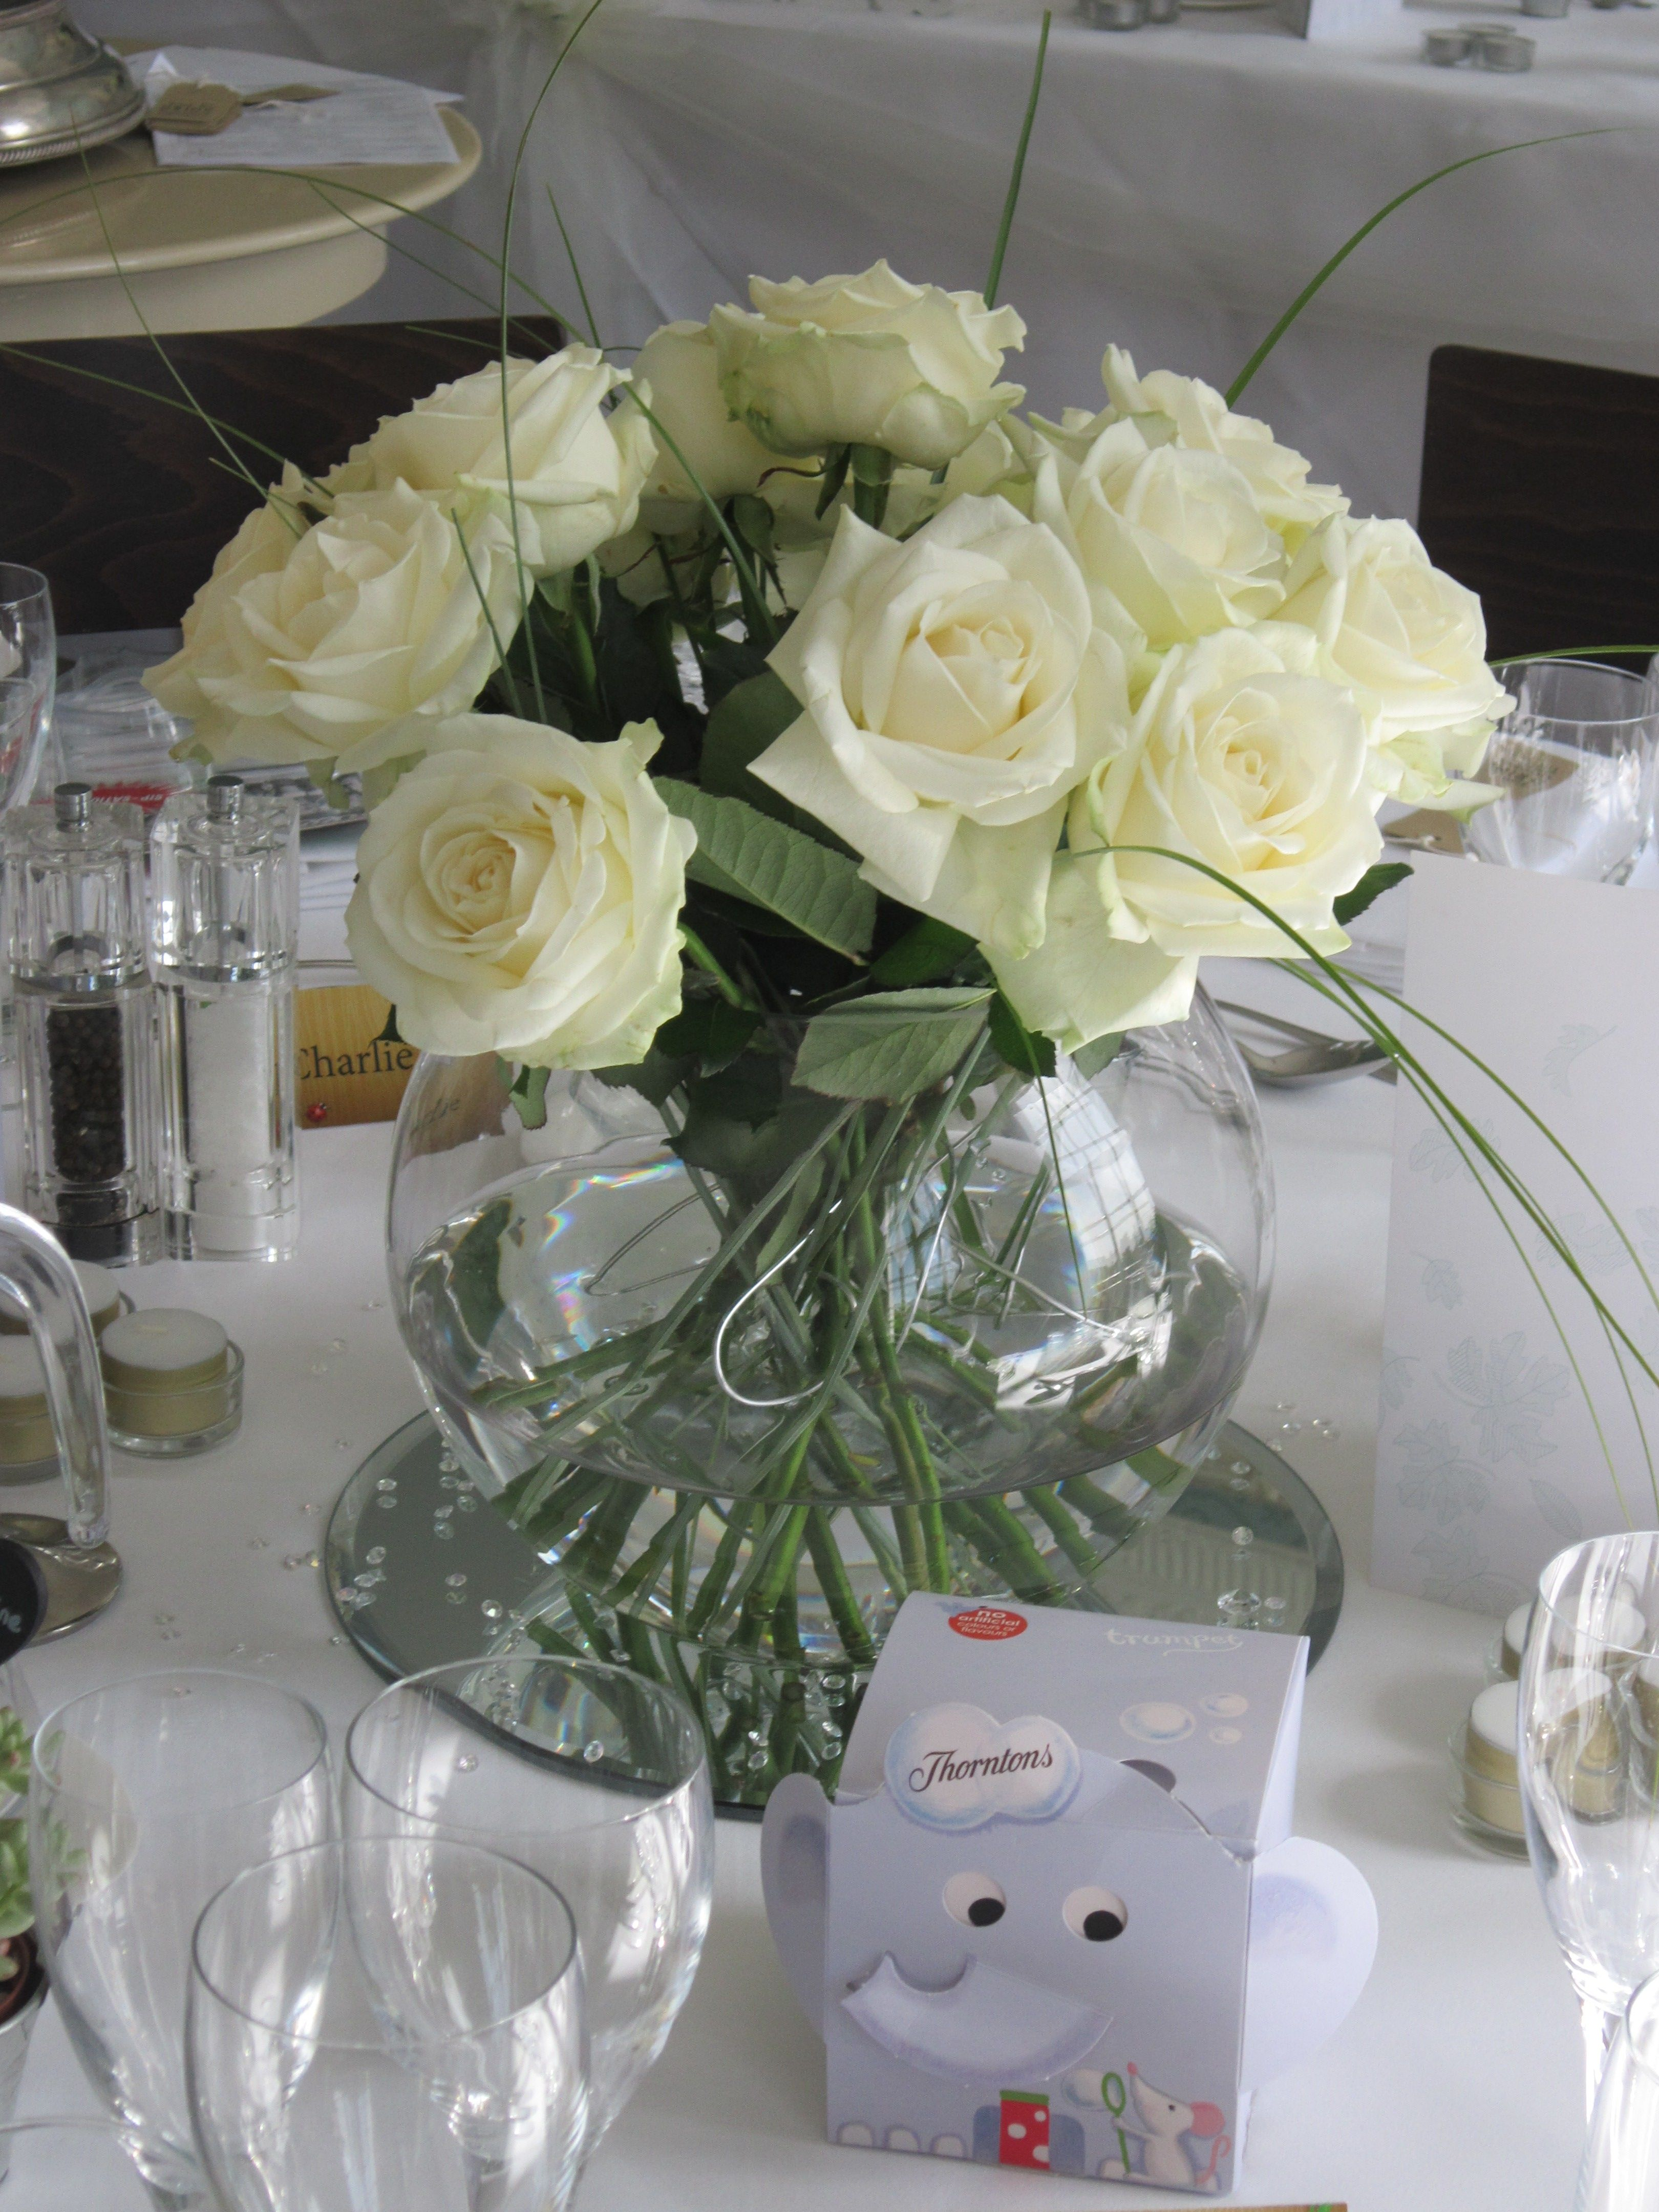 Fishbowl vase with white roses and beargrass flowers